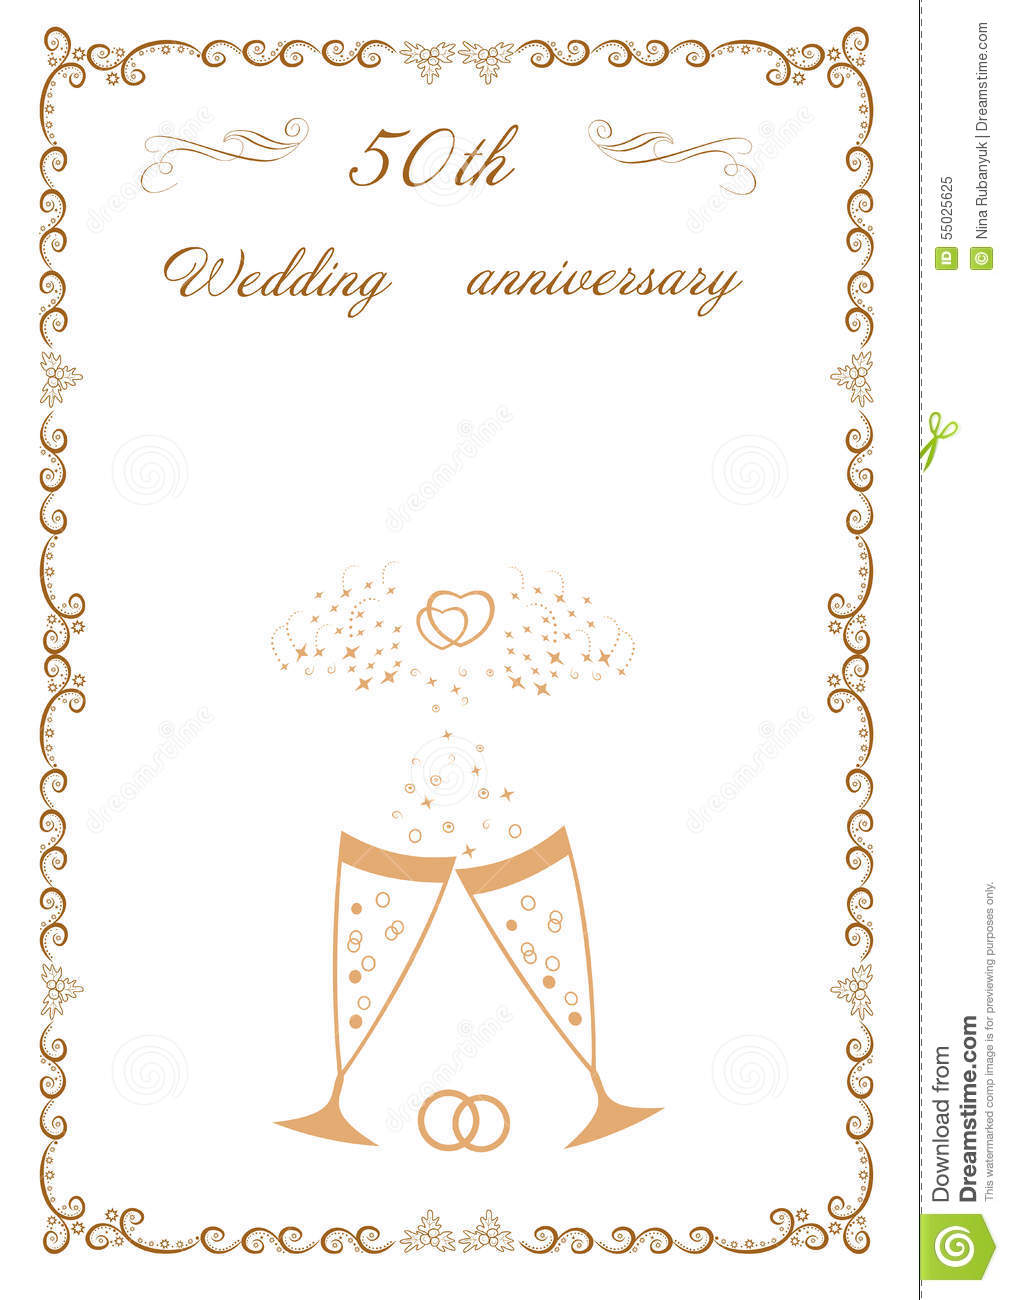 Congratulations To The 50 Anniversary Wedding Stock Illustration